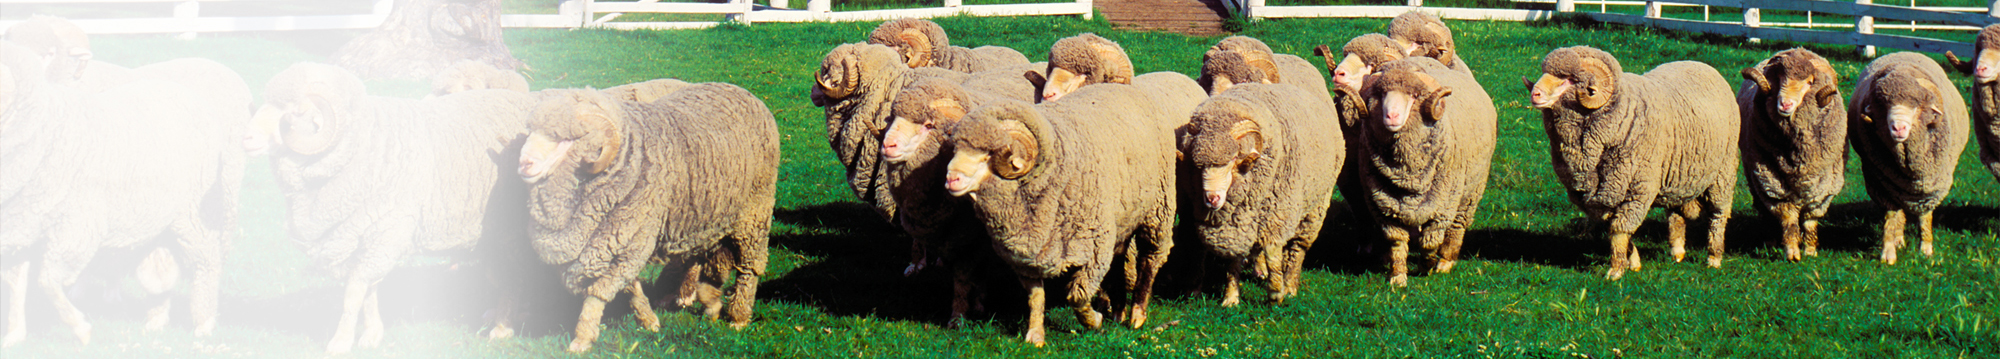 NEW-HEADER1_Sheep.2000